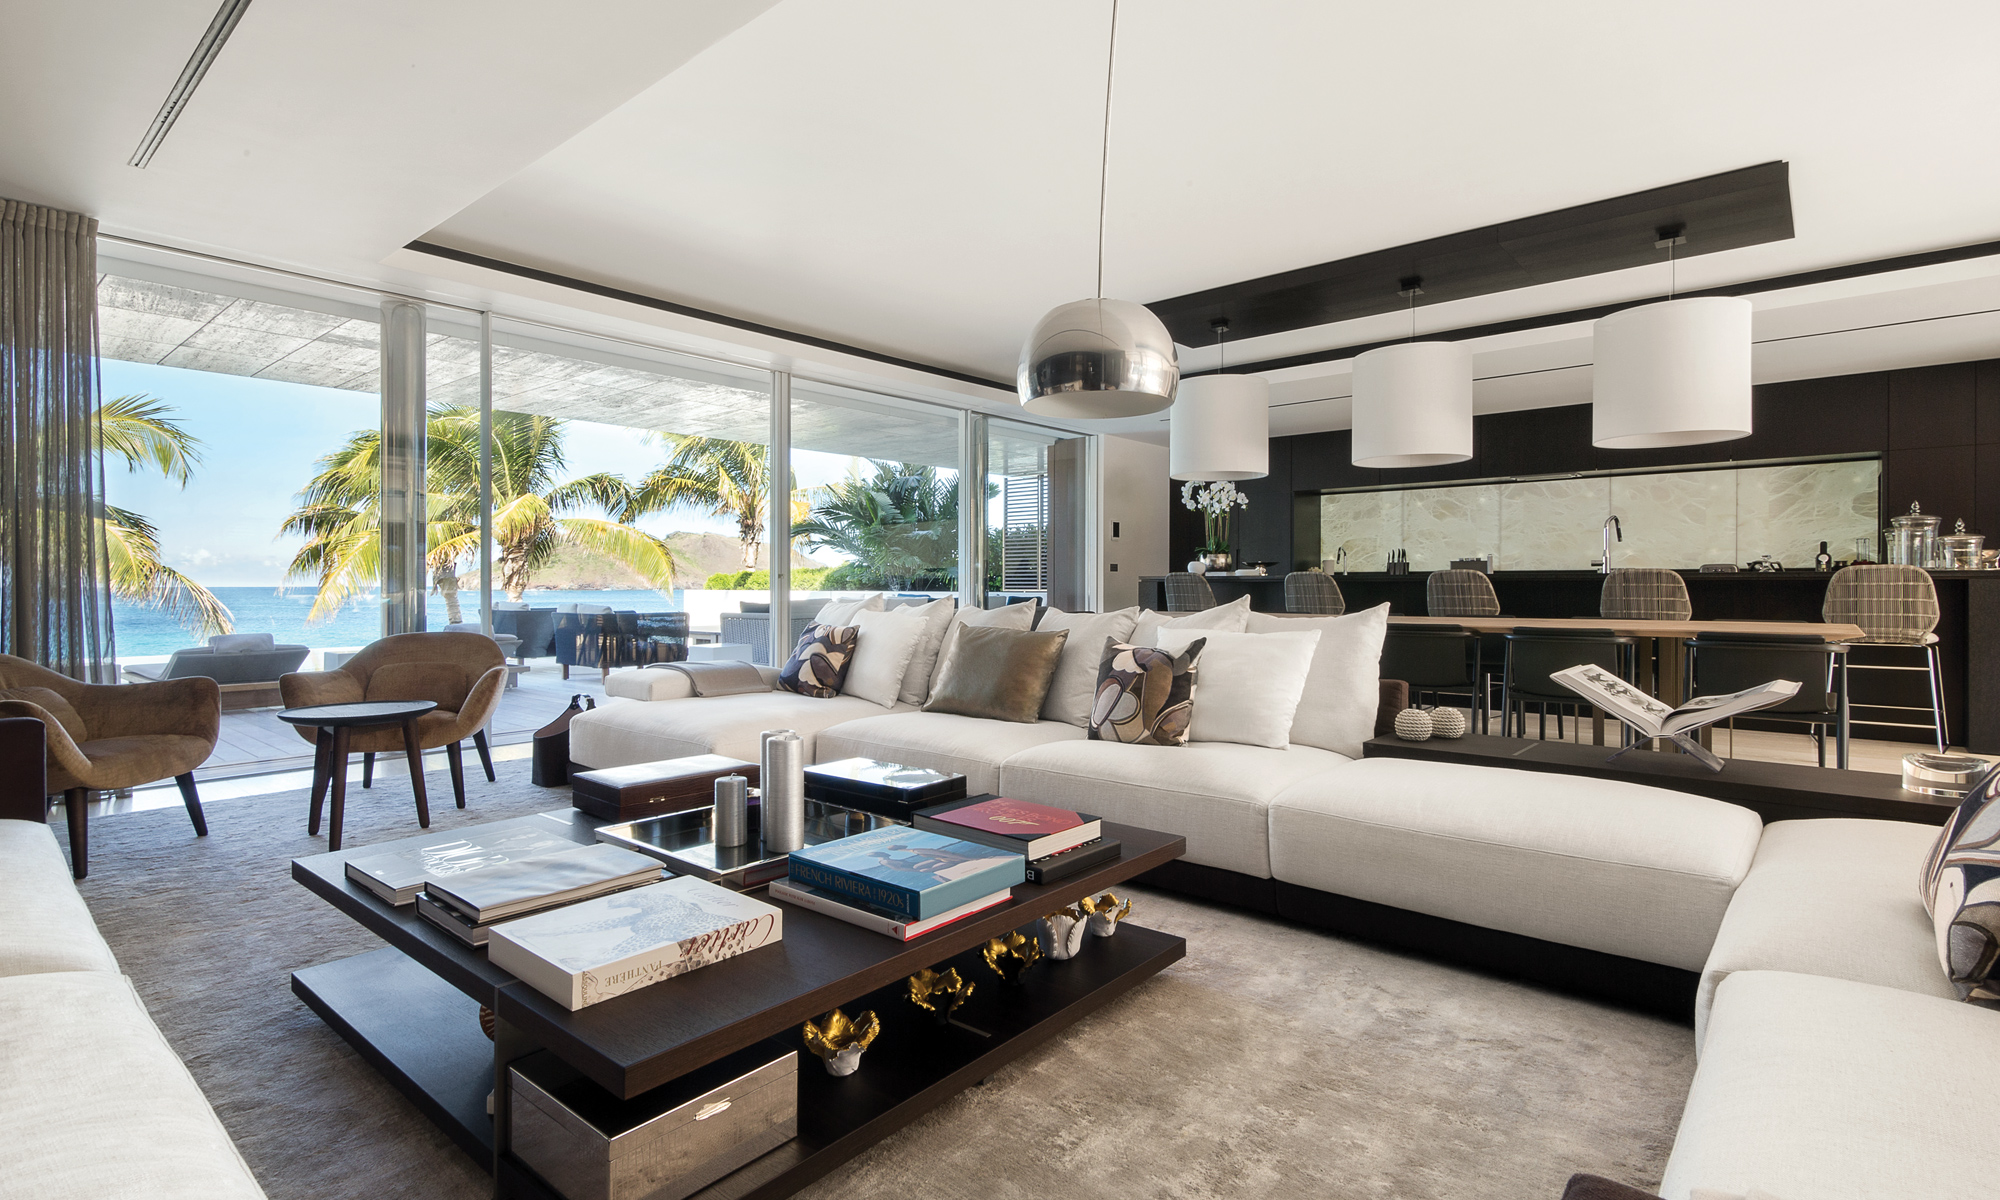 Spacious open plan living and dining area with direct views out onto Flamands beach.